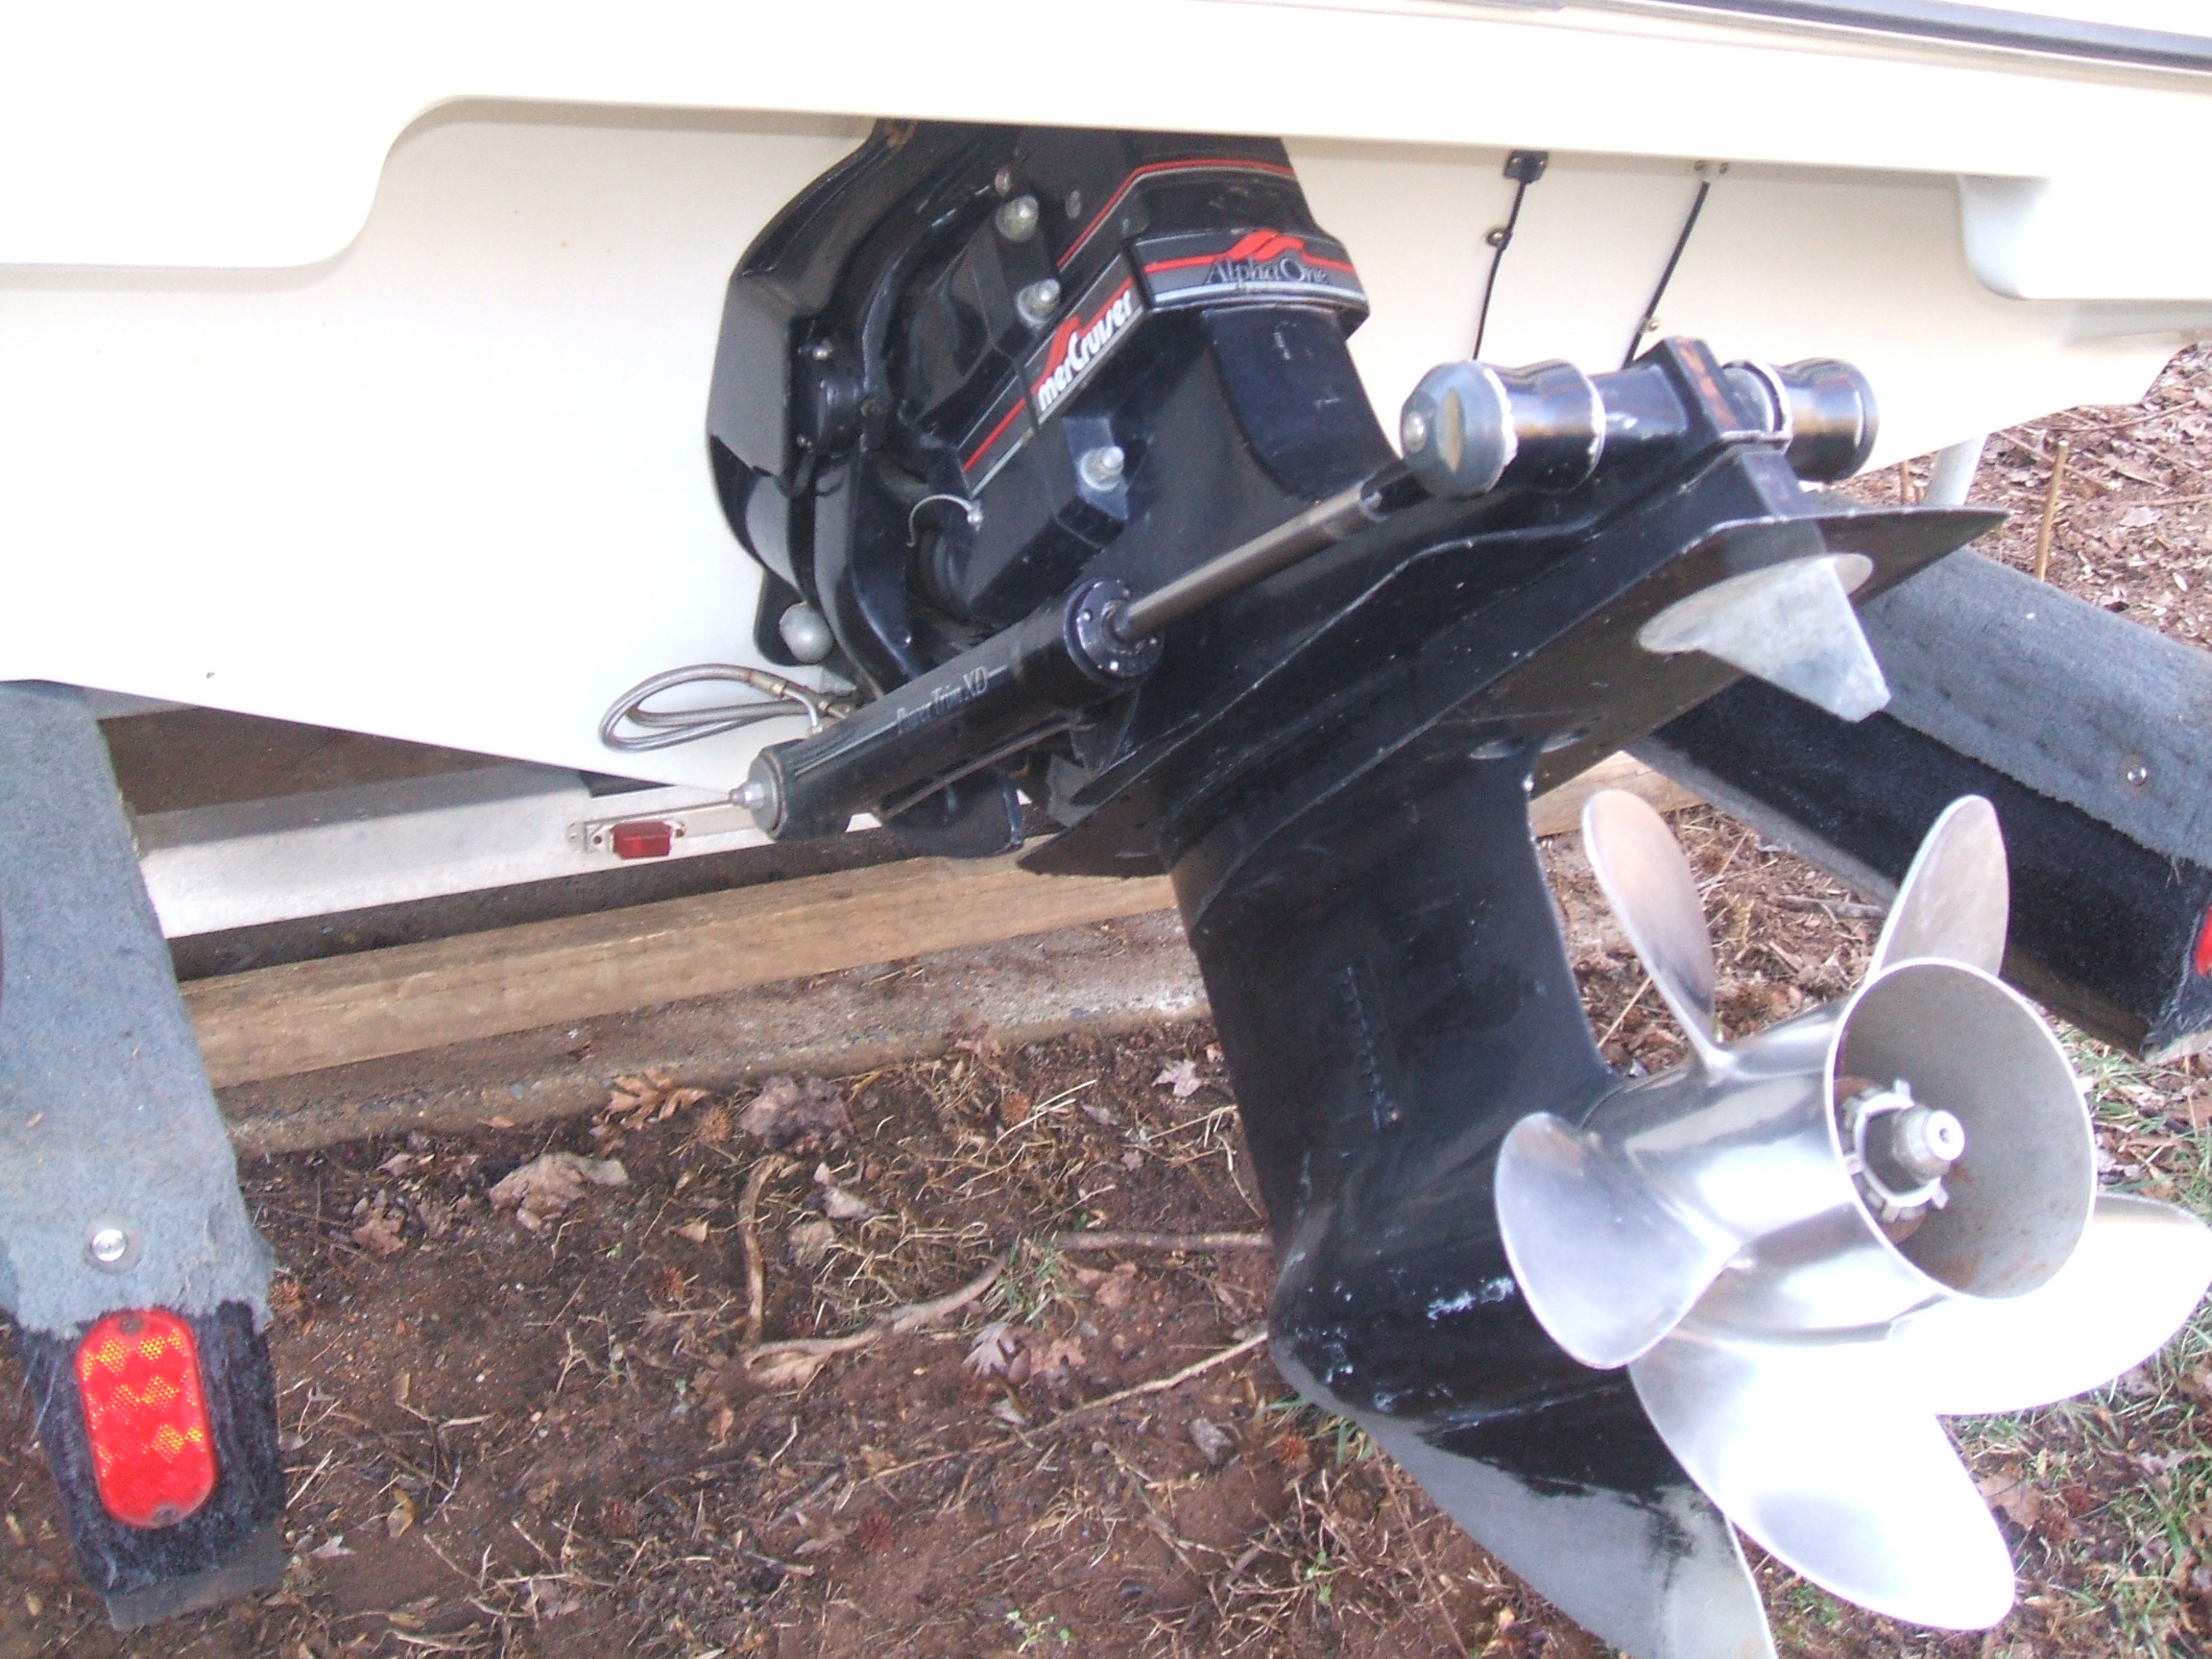 Boat Project Sold to Scott June 1, 2009